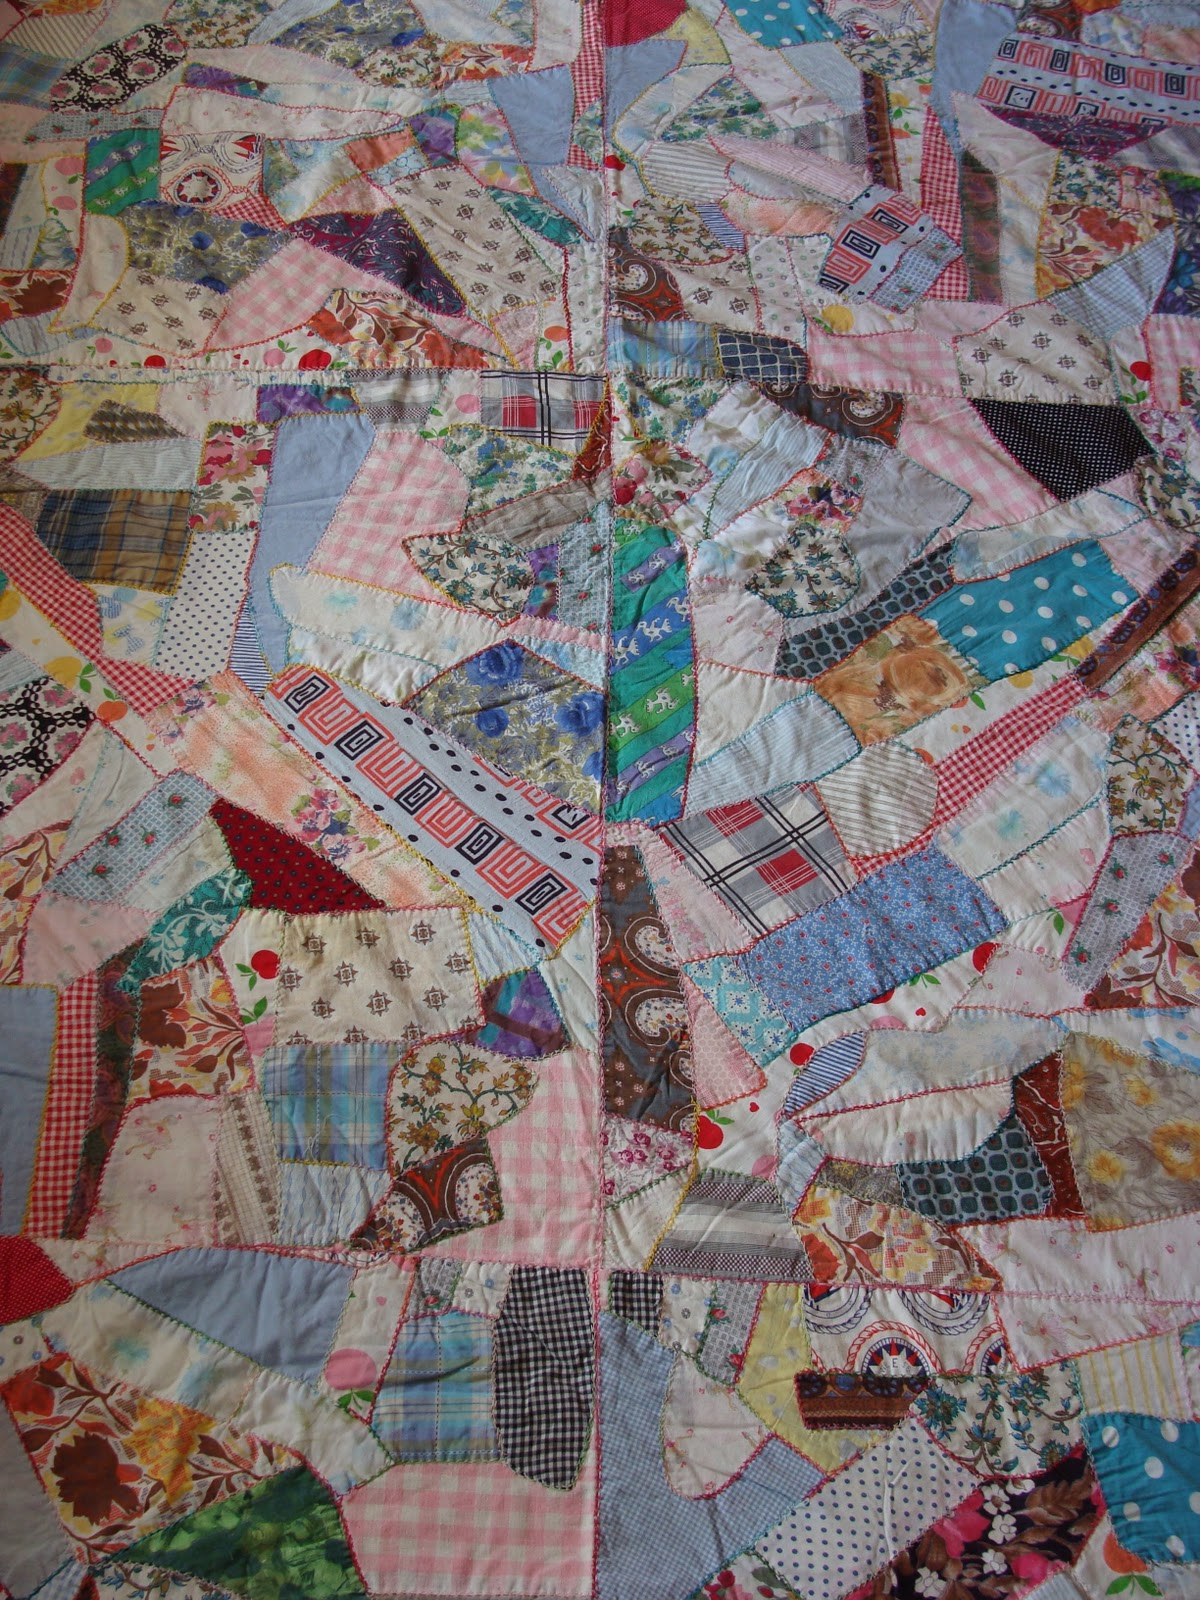 dating crazy quilts Caring for old quilts during the crazy-quilt mania of the 1880s learn more about dating and preserving old quilts from these museums:.